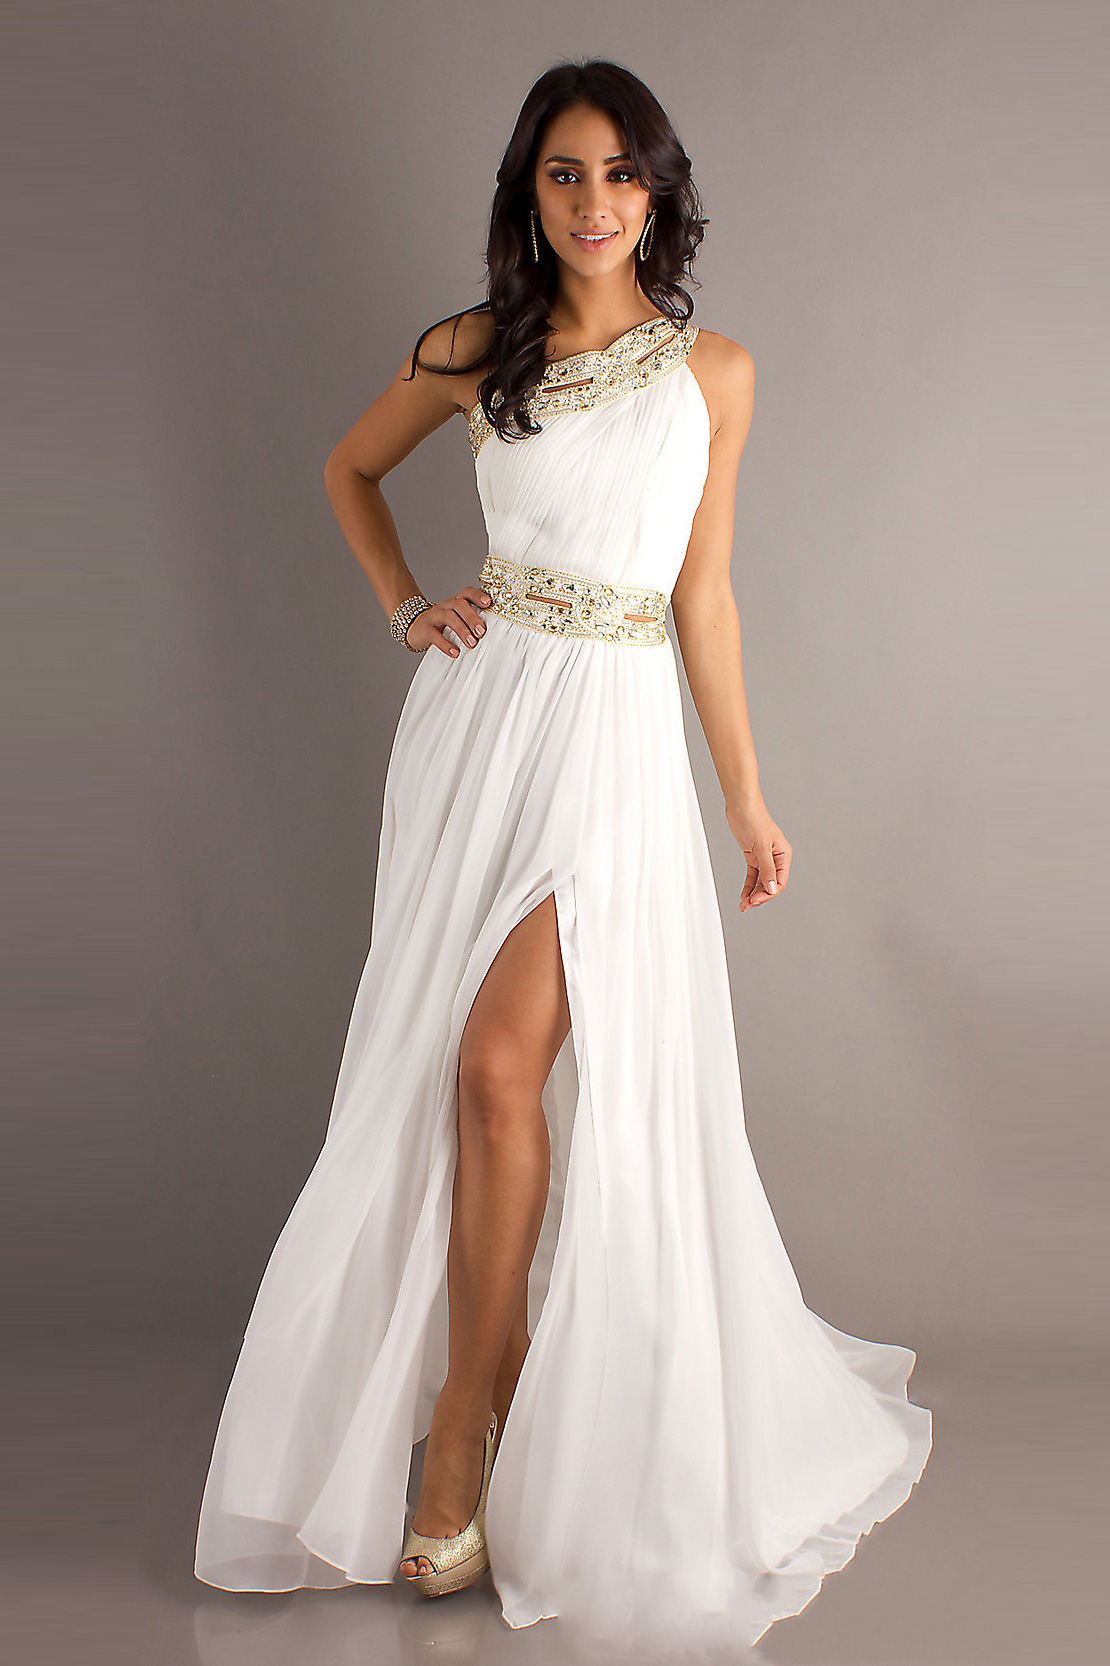 Prom Dresses All White - Boutique Prom Dresses